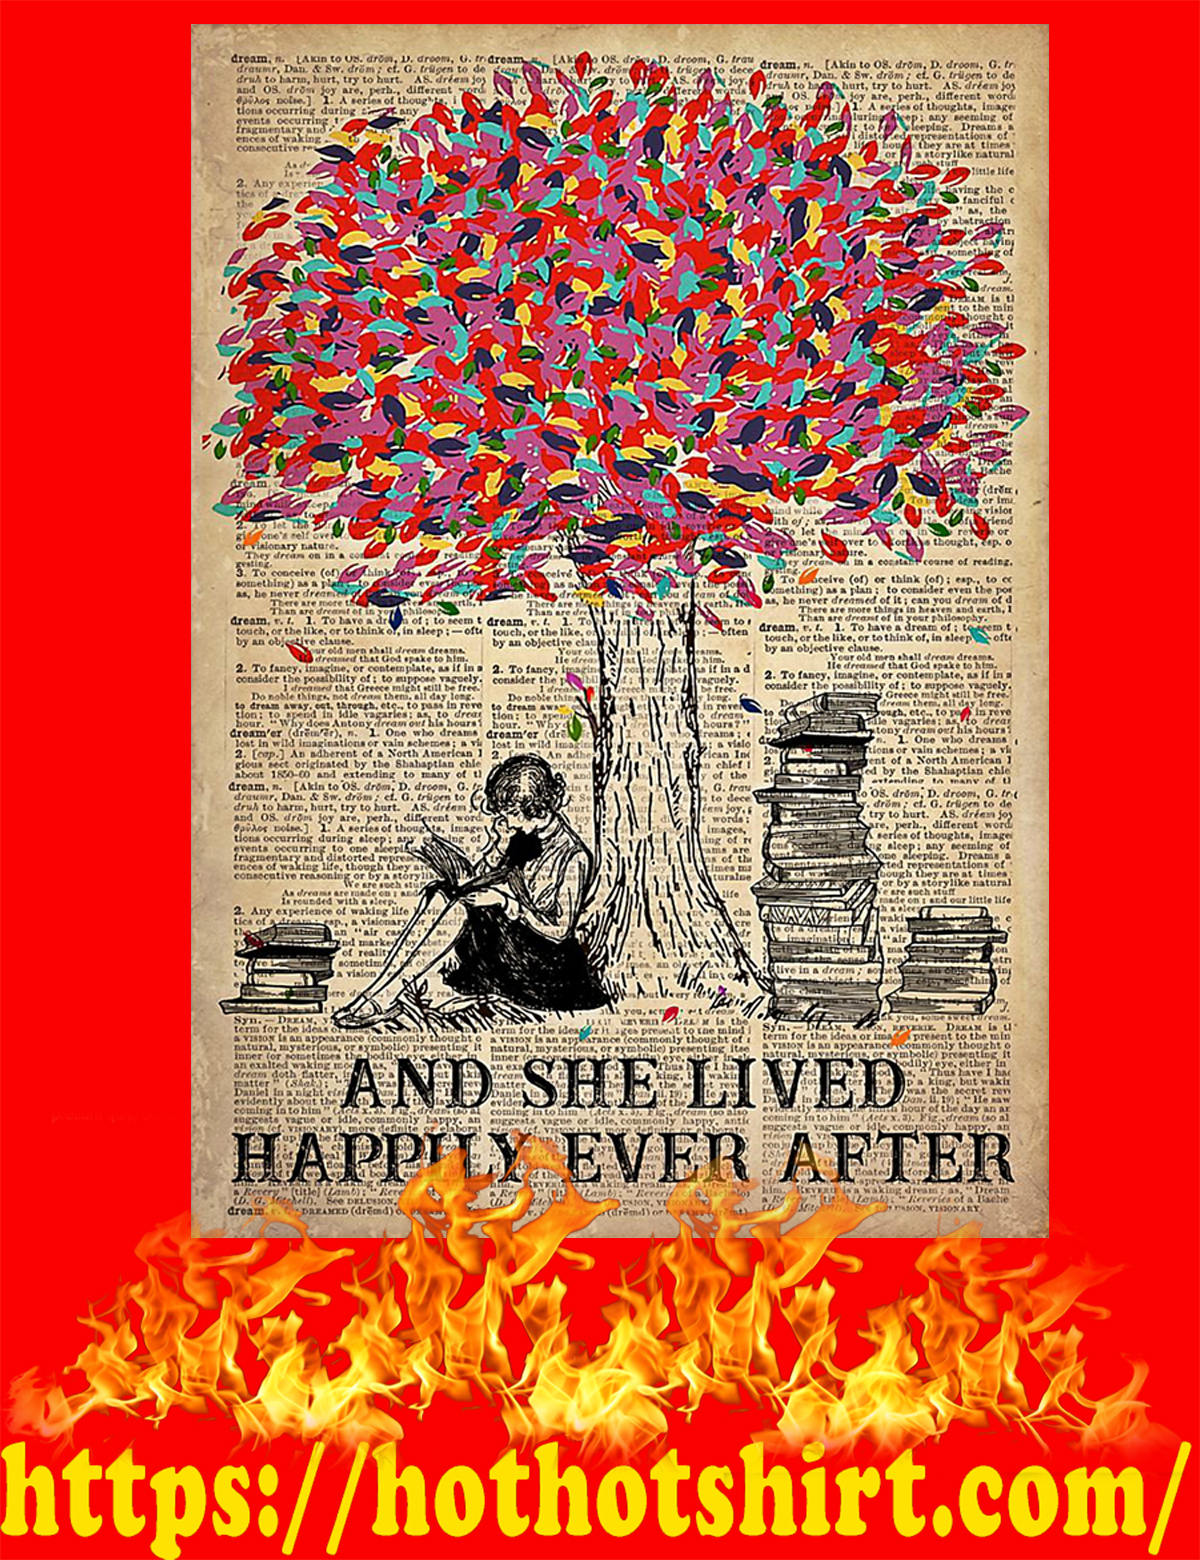 Just a girl who loves books poster - A3